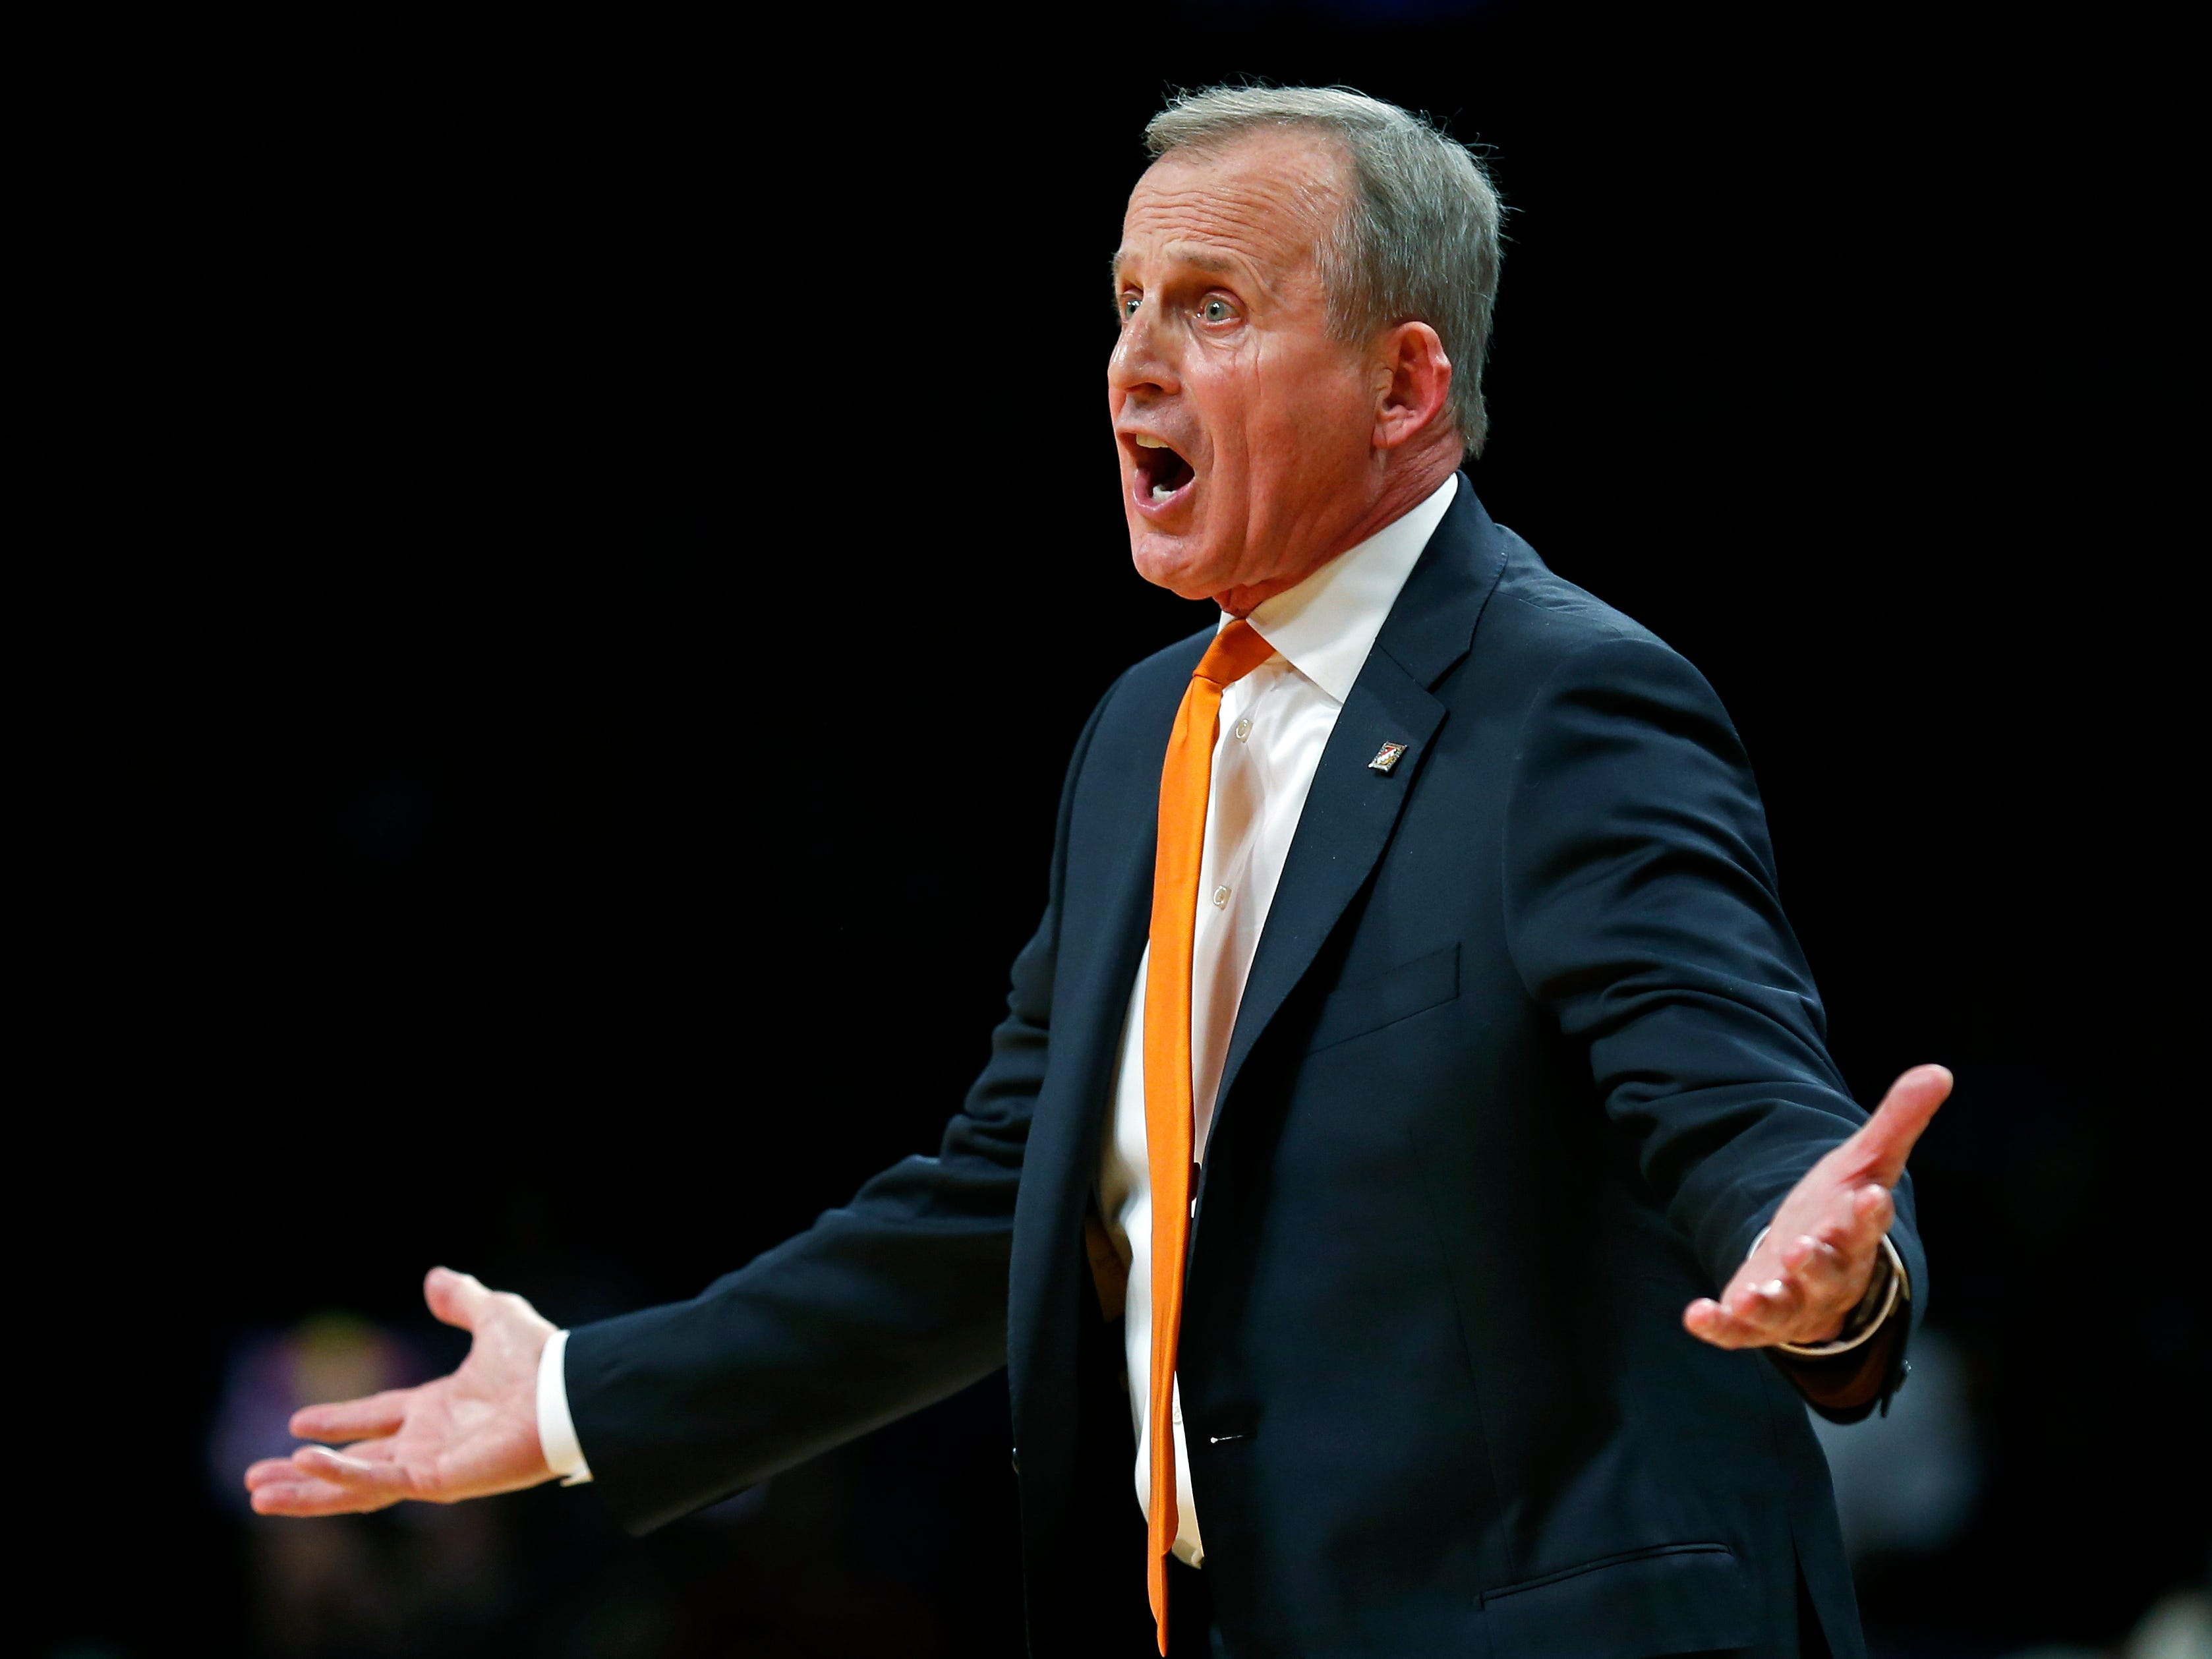 Tennessee coach Rick Barnes reacts to a call during overtime of the team's NCAA college basketball game against Tennessee in the NIT Season Tip-Off tournament Friday, Nov. 23, 2018, in New York. Kansas defeated Tennessee 87-81. (AP Photo/Adam Hunger)